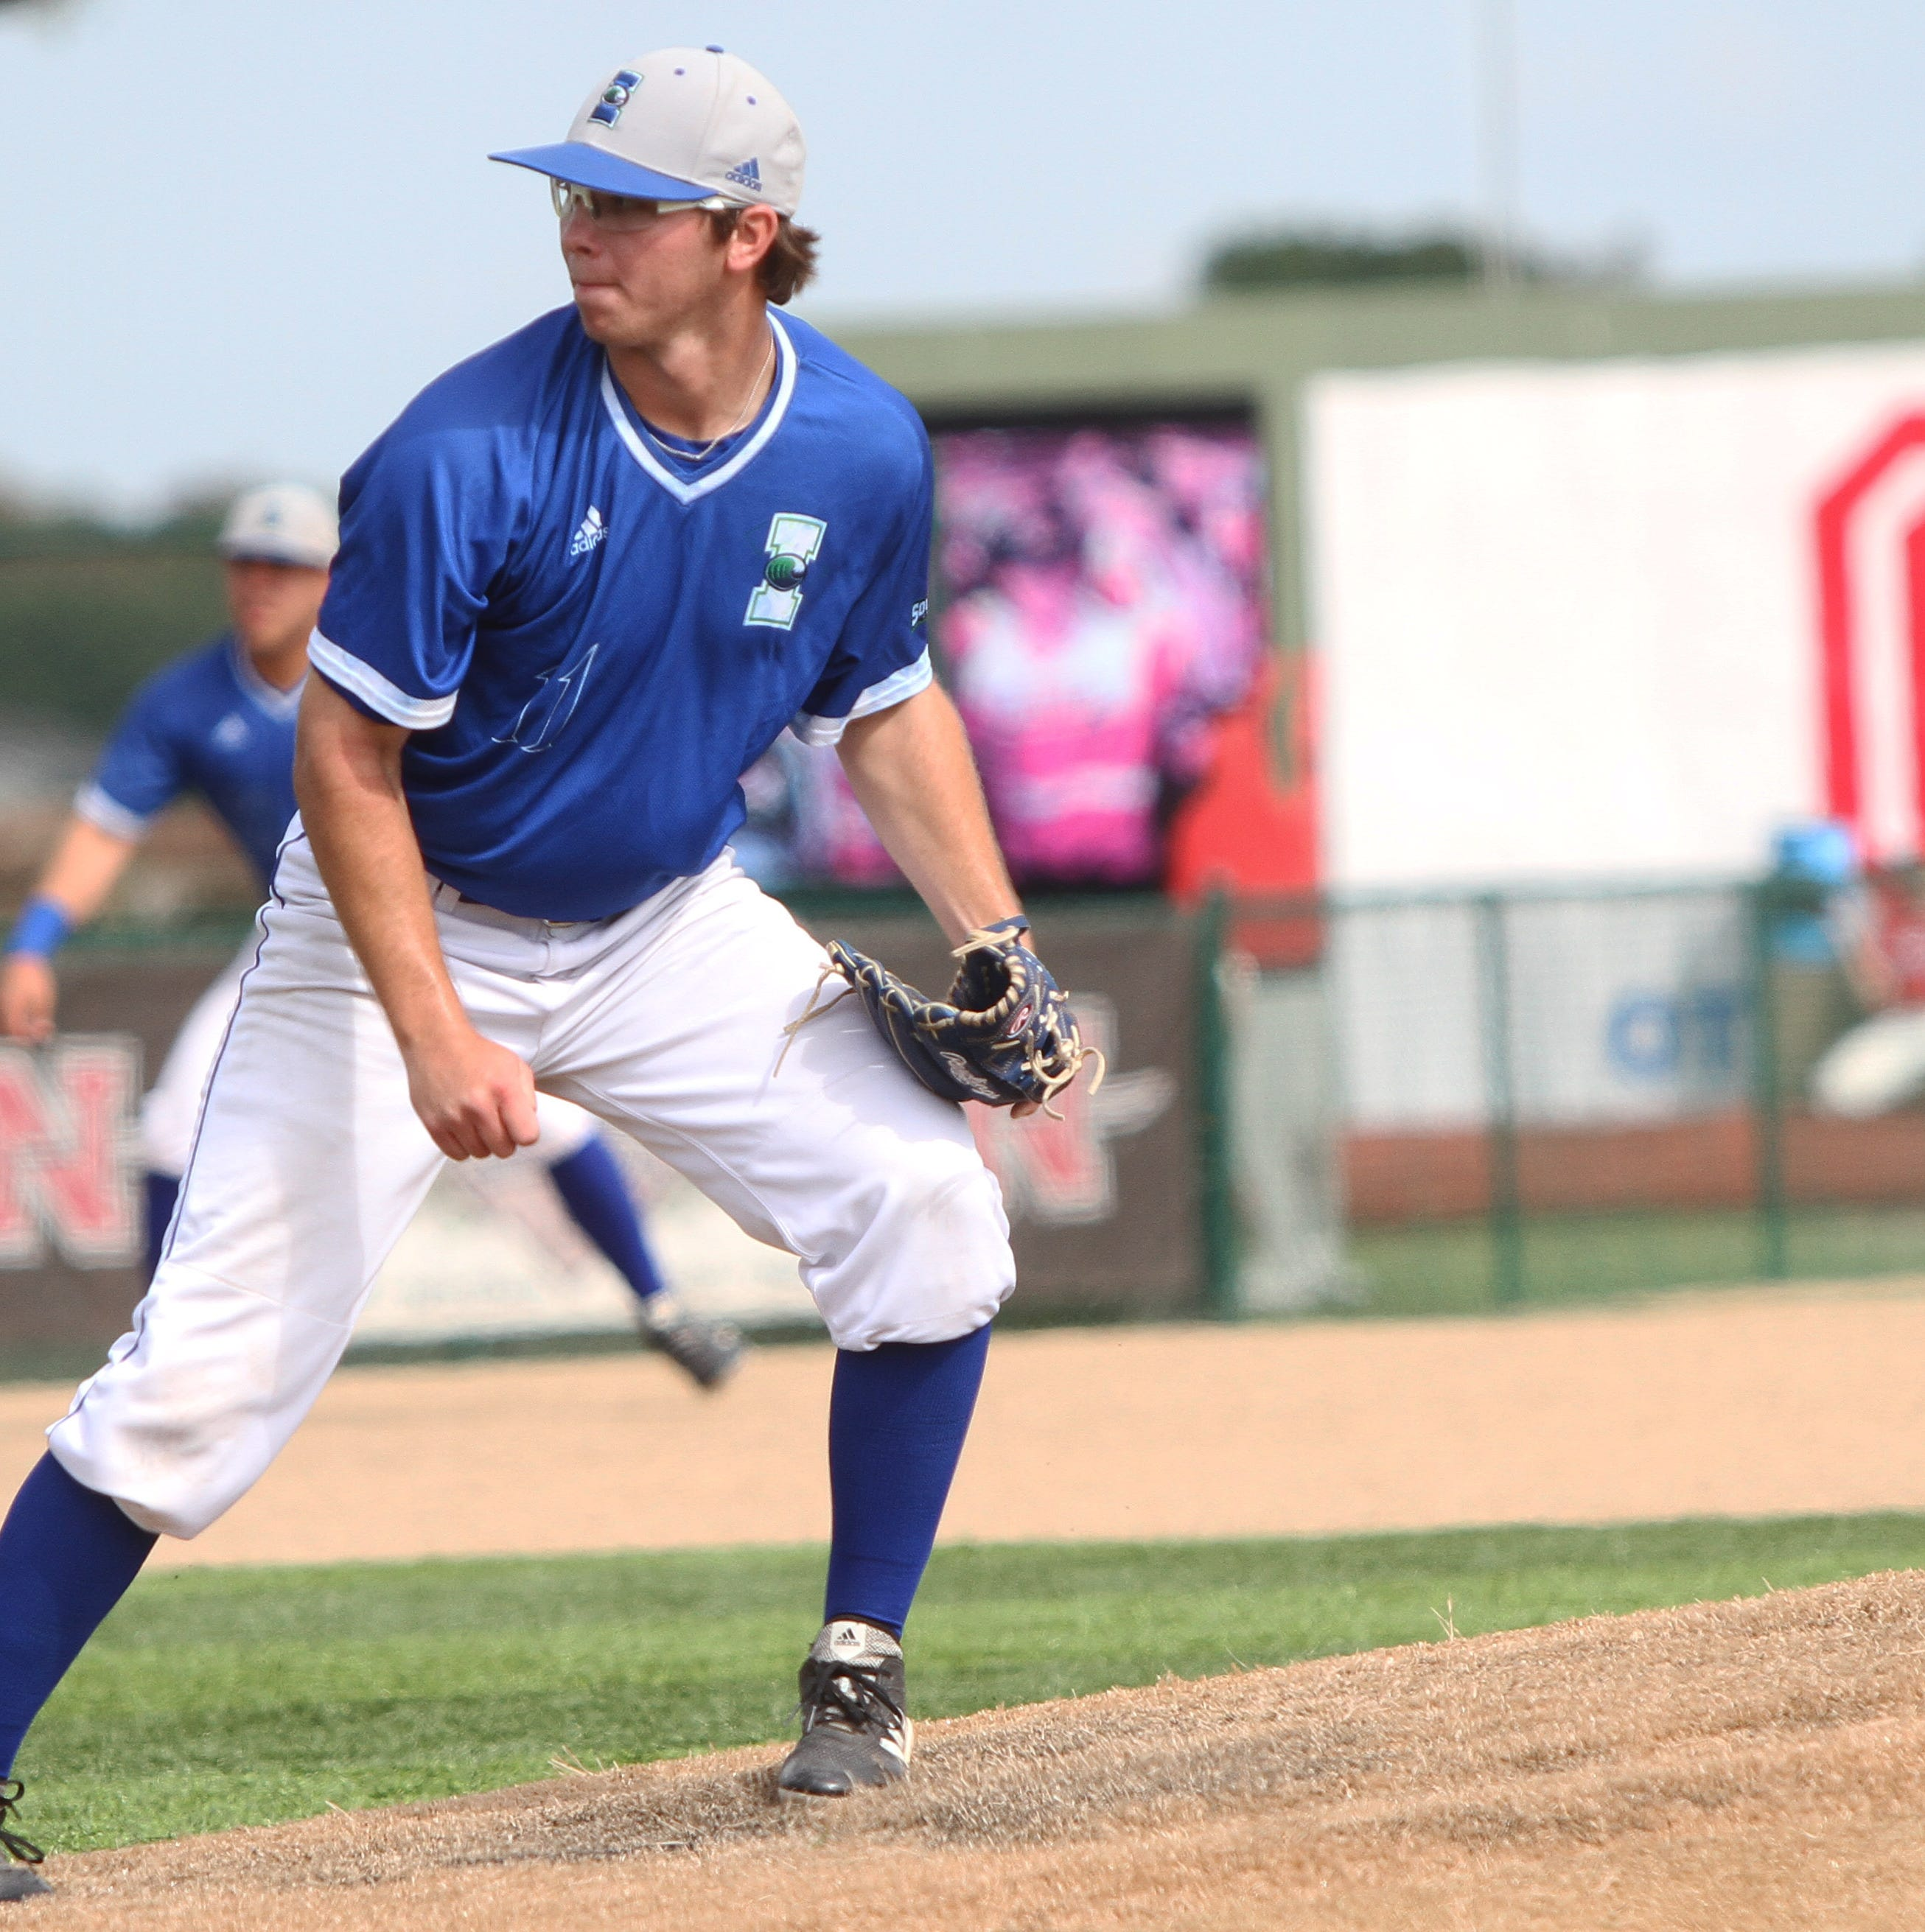 HOMETOWN HEROES: Five questions with Texas A&M Corpus Christi's Zach Rumfield